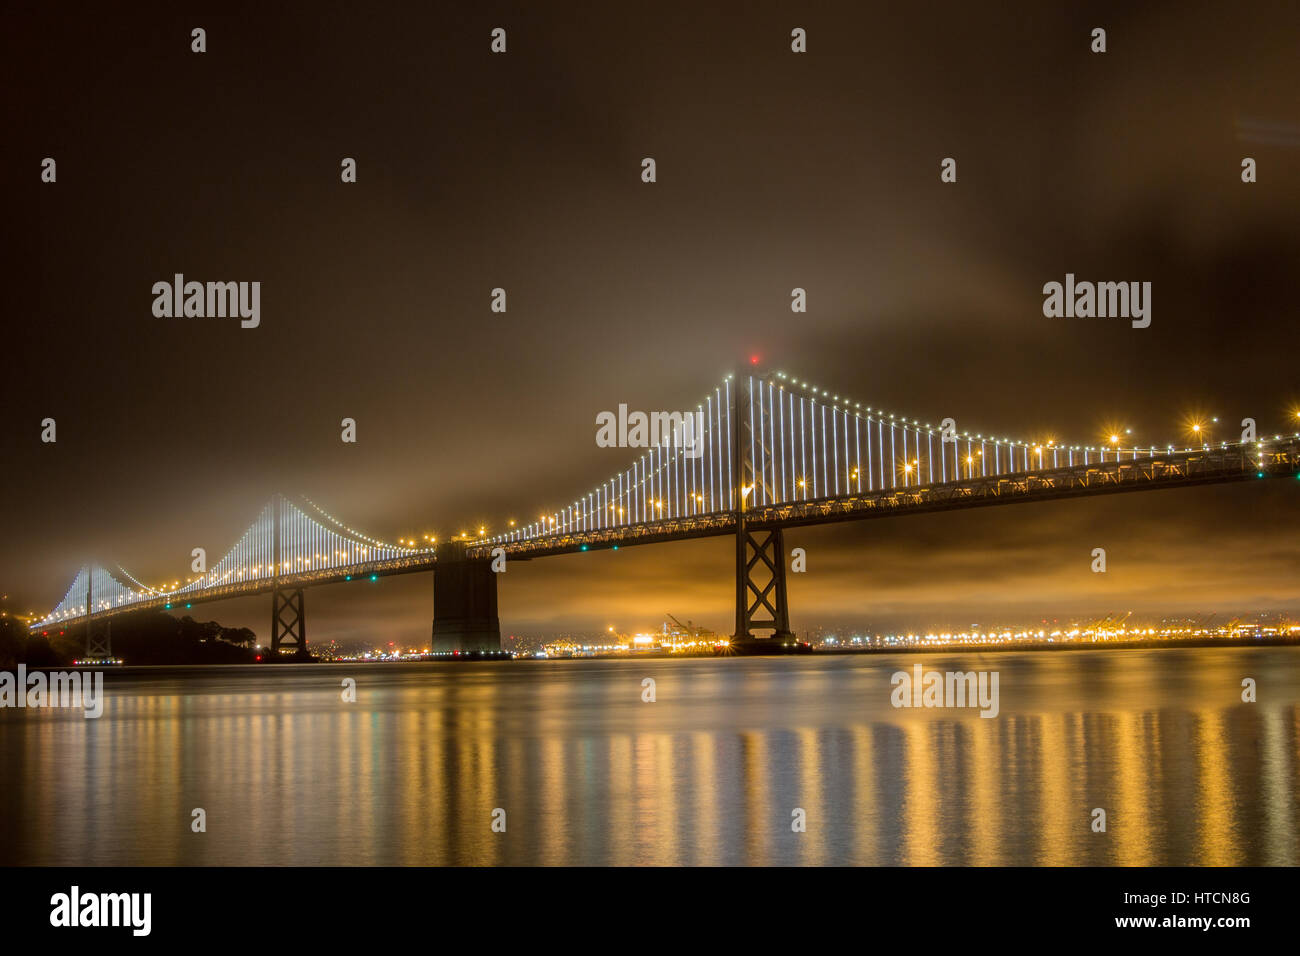 San Fransisco, one of the best cities in the US & world where you can find amazing bridges like golden gate, - Stock Image